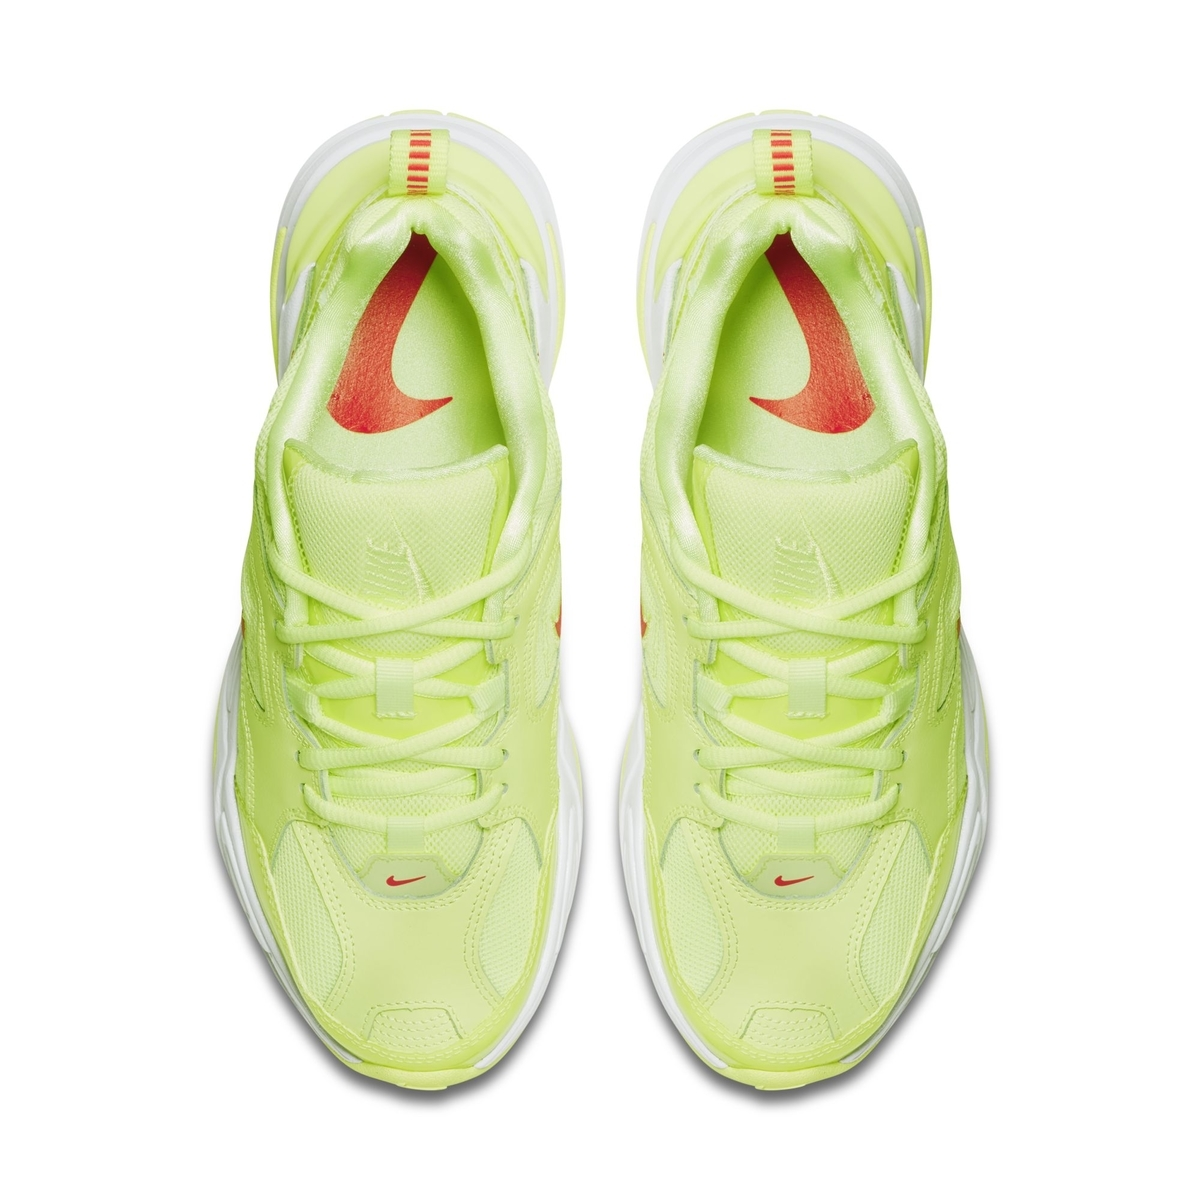 NIKE M2K TEKNO BARELY VOLT:WHITE:RED ORBIT 2